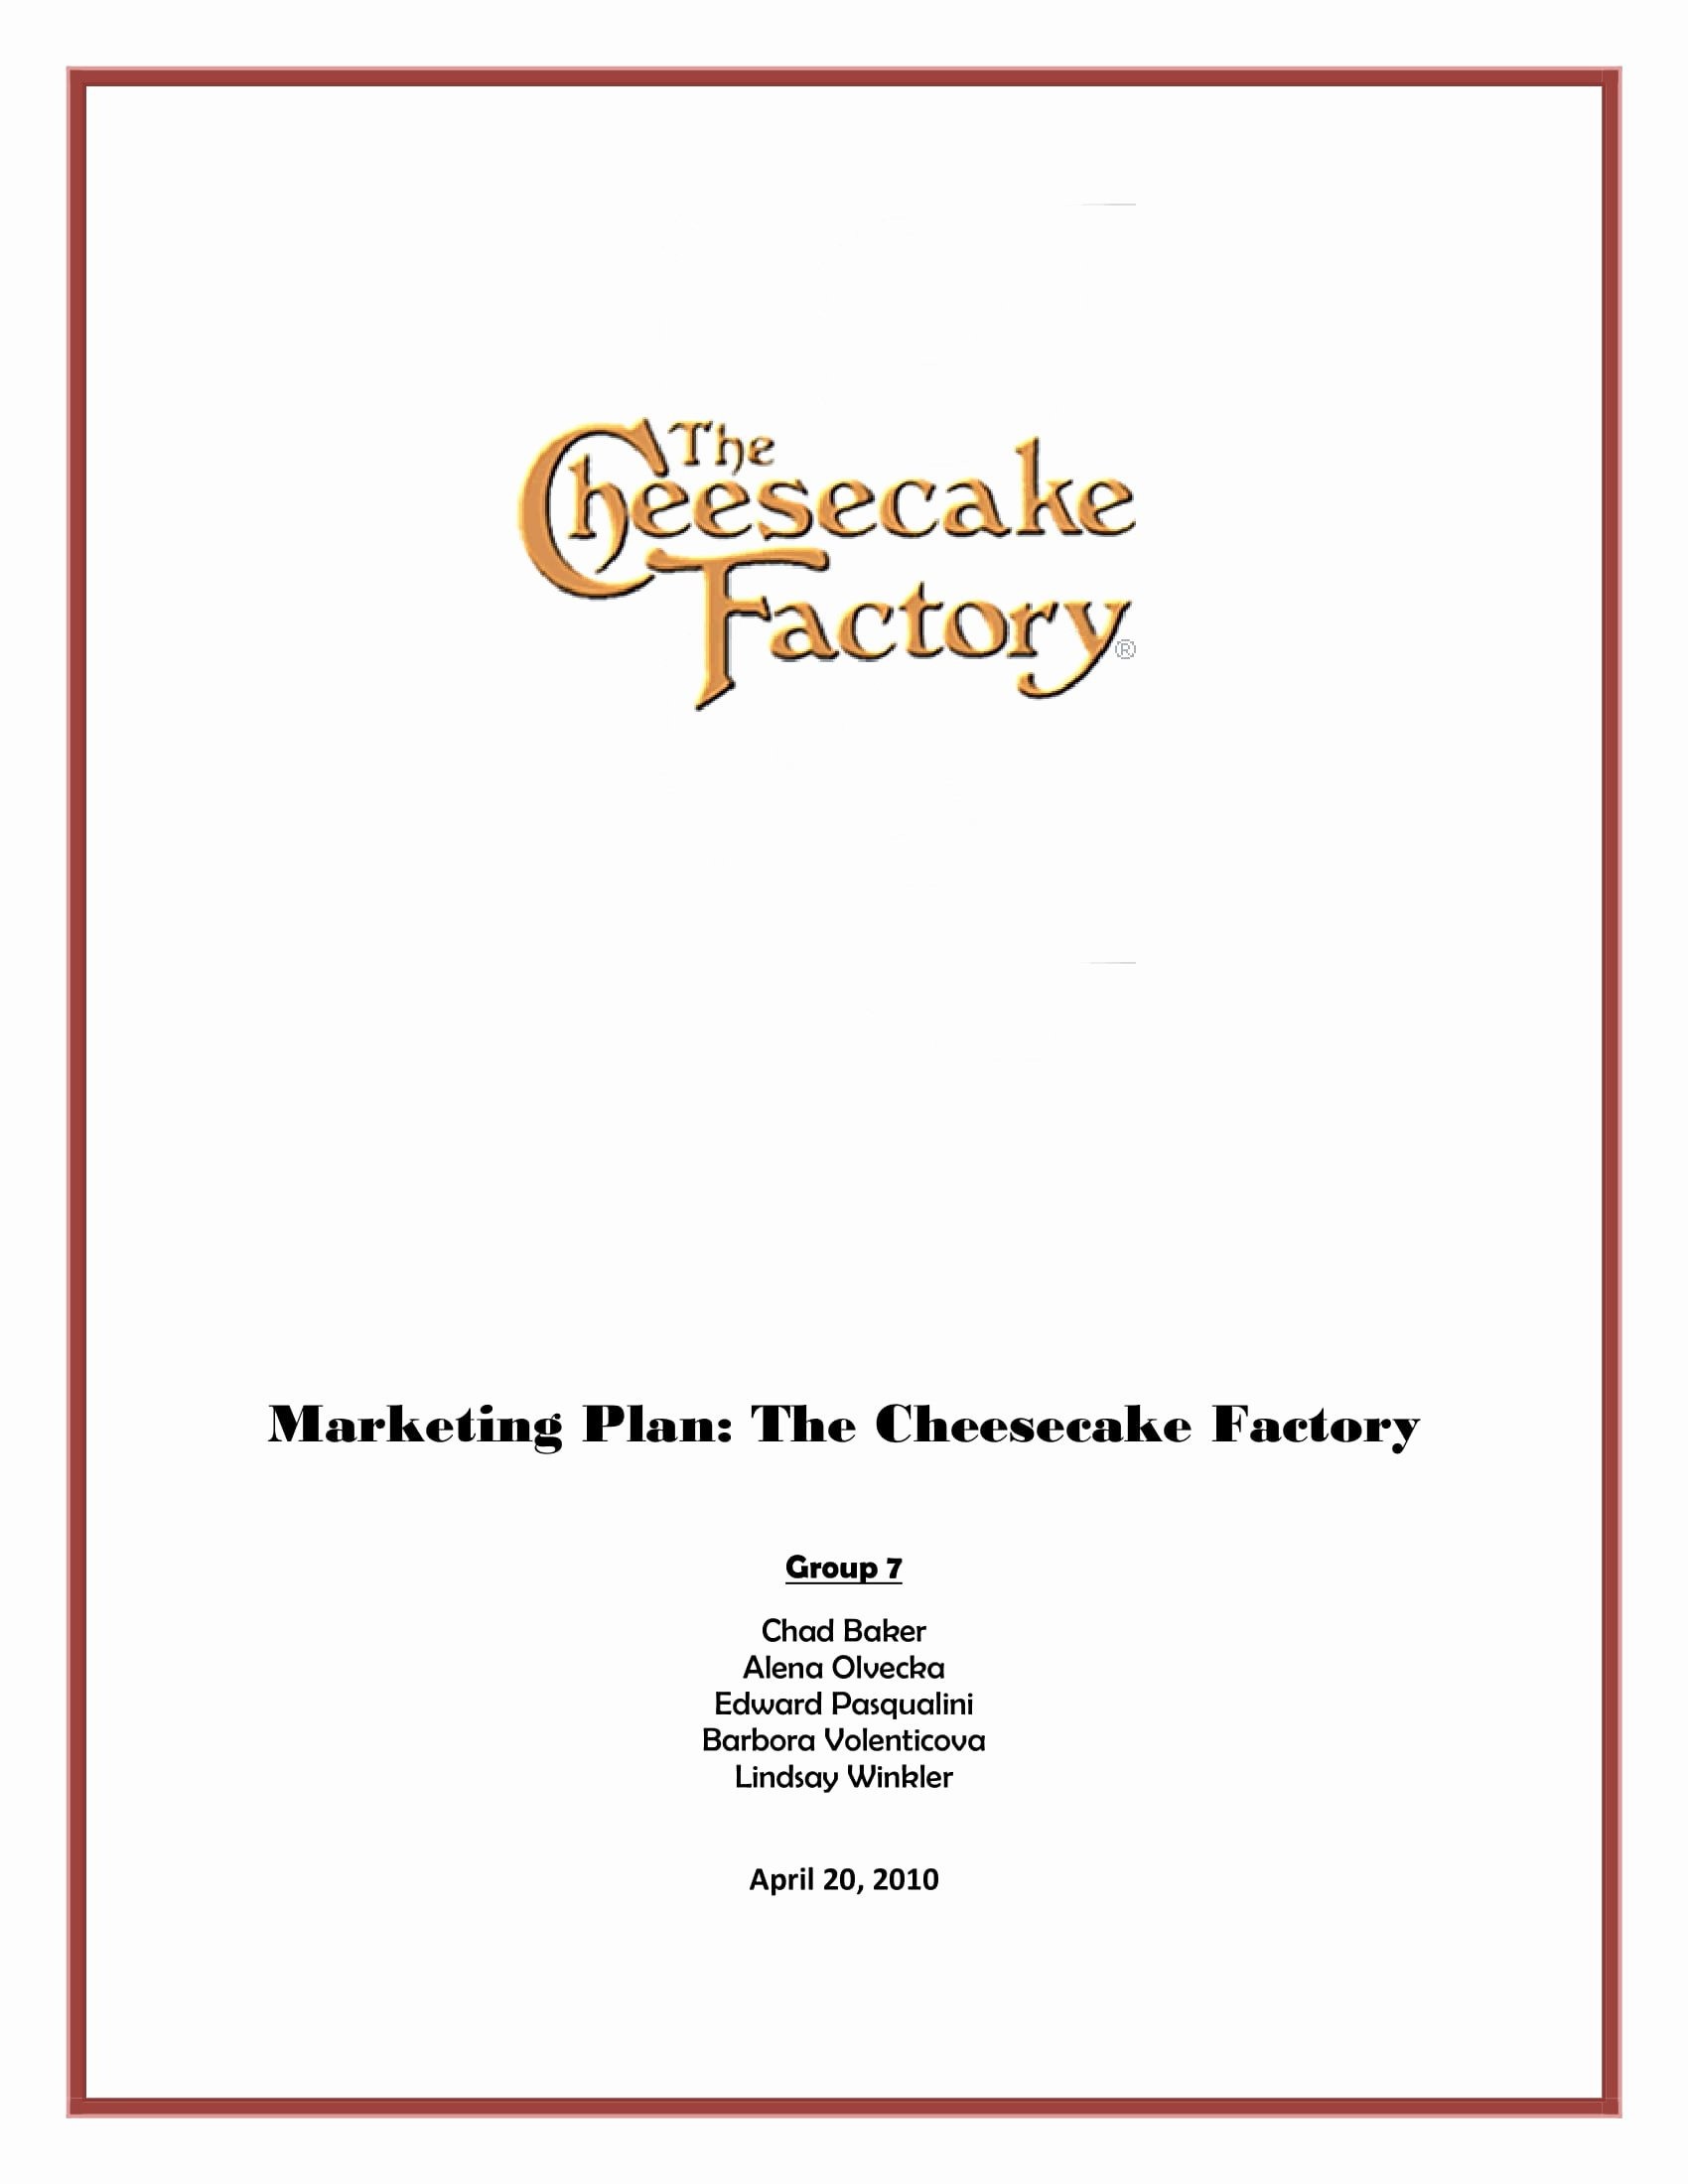 Restaurant Marketing Plan Pdf Awesome 15 Sample Restaurant Marketing Plan Templates Pdf Doc Apple Pages